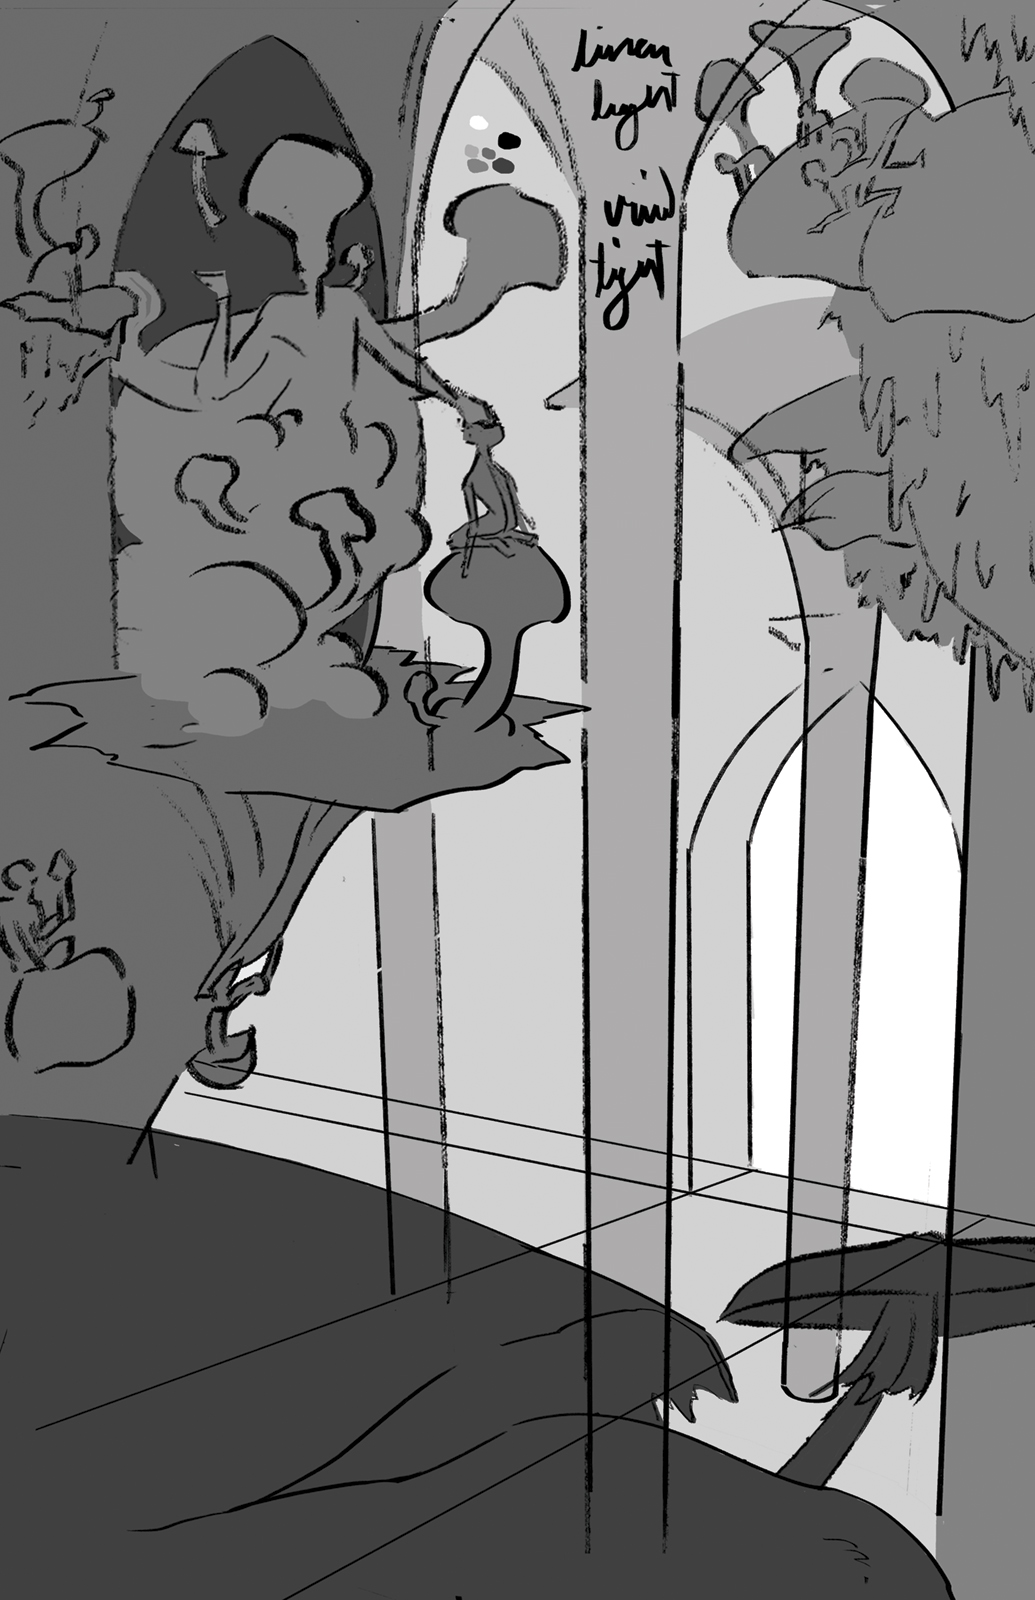 Greyscale thumbnail of Mycelysis. Shows the basic composition and lighting of the mushroom cathedral.